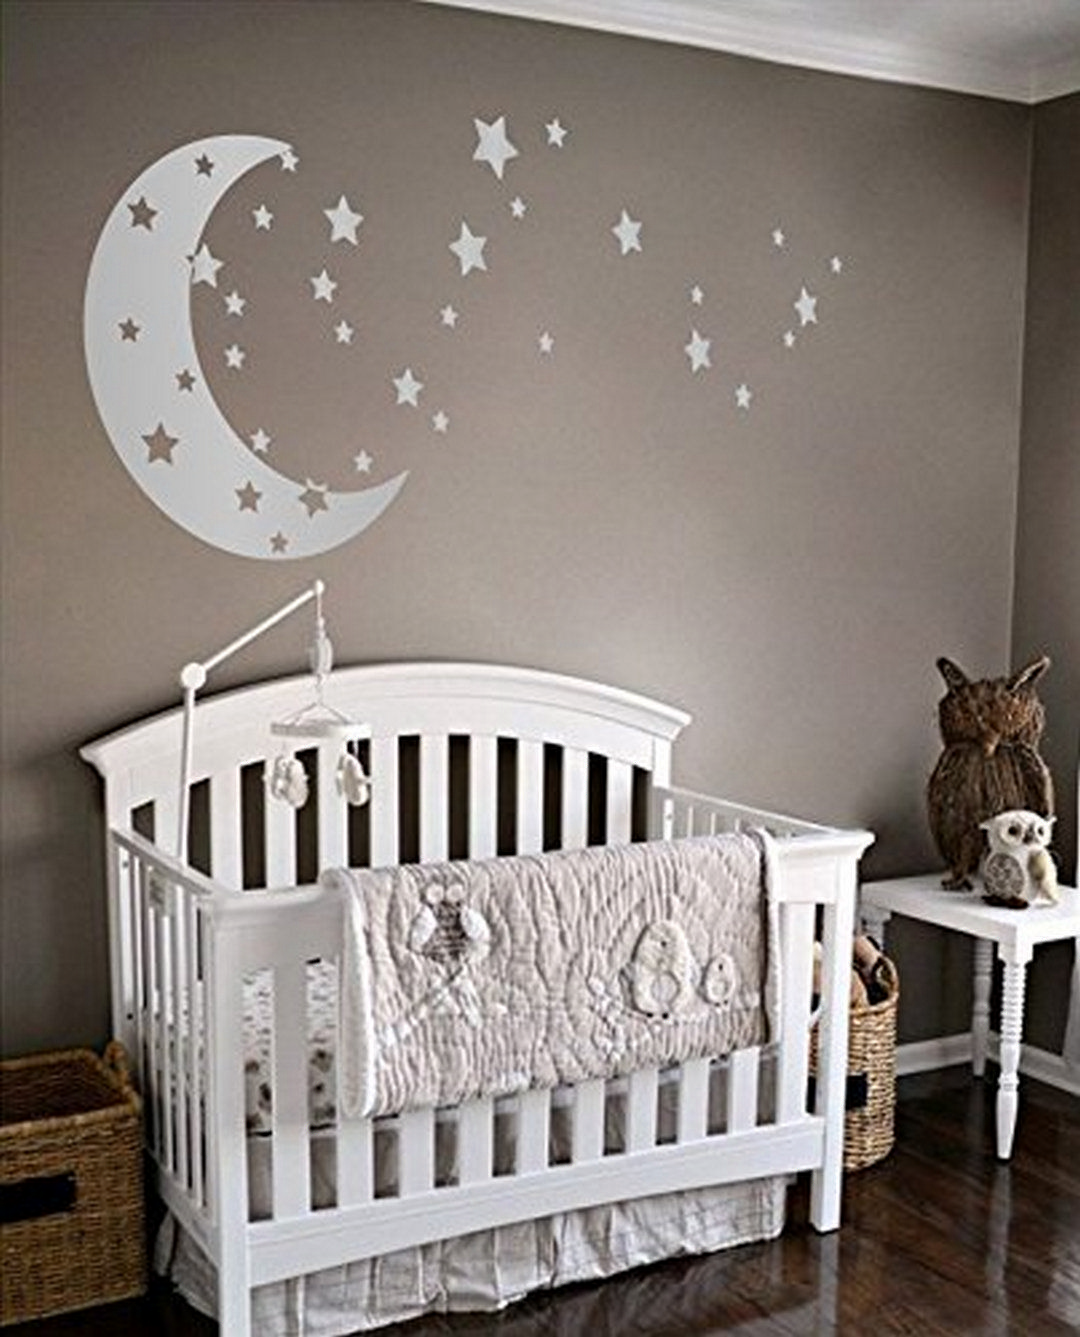 Co Kindergarten And Nursery A Modern Cafe With Child Care Support Baby Boy Room Decor Nursery Room Diy Baby Boy Rooms